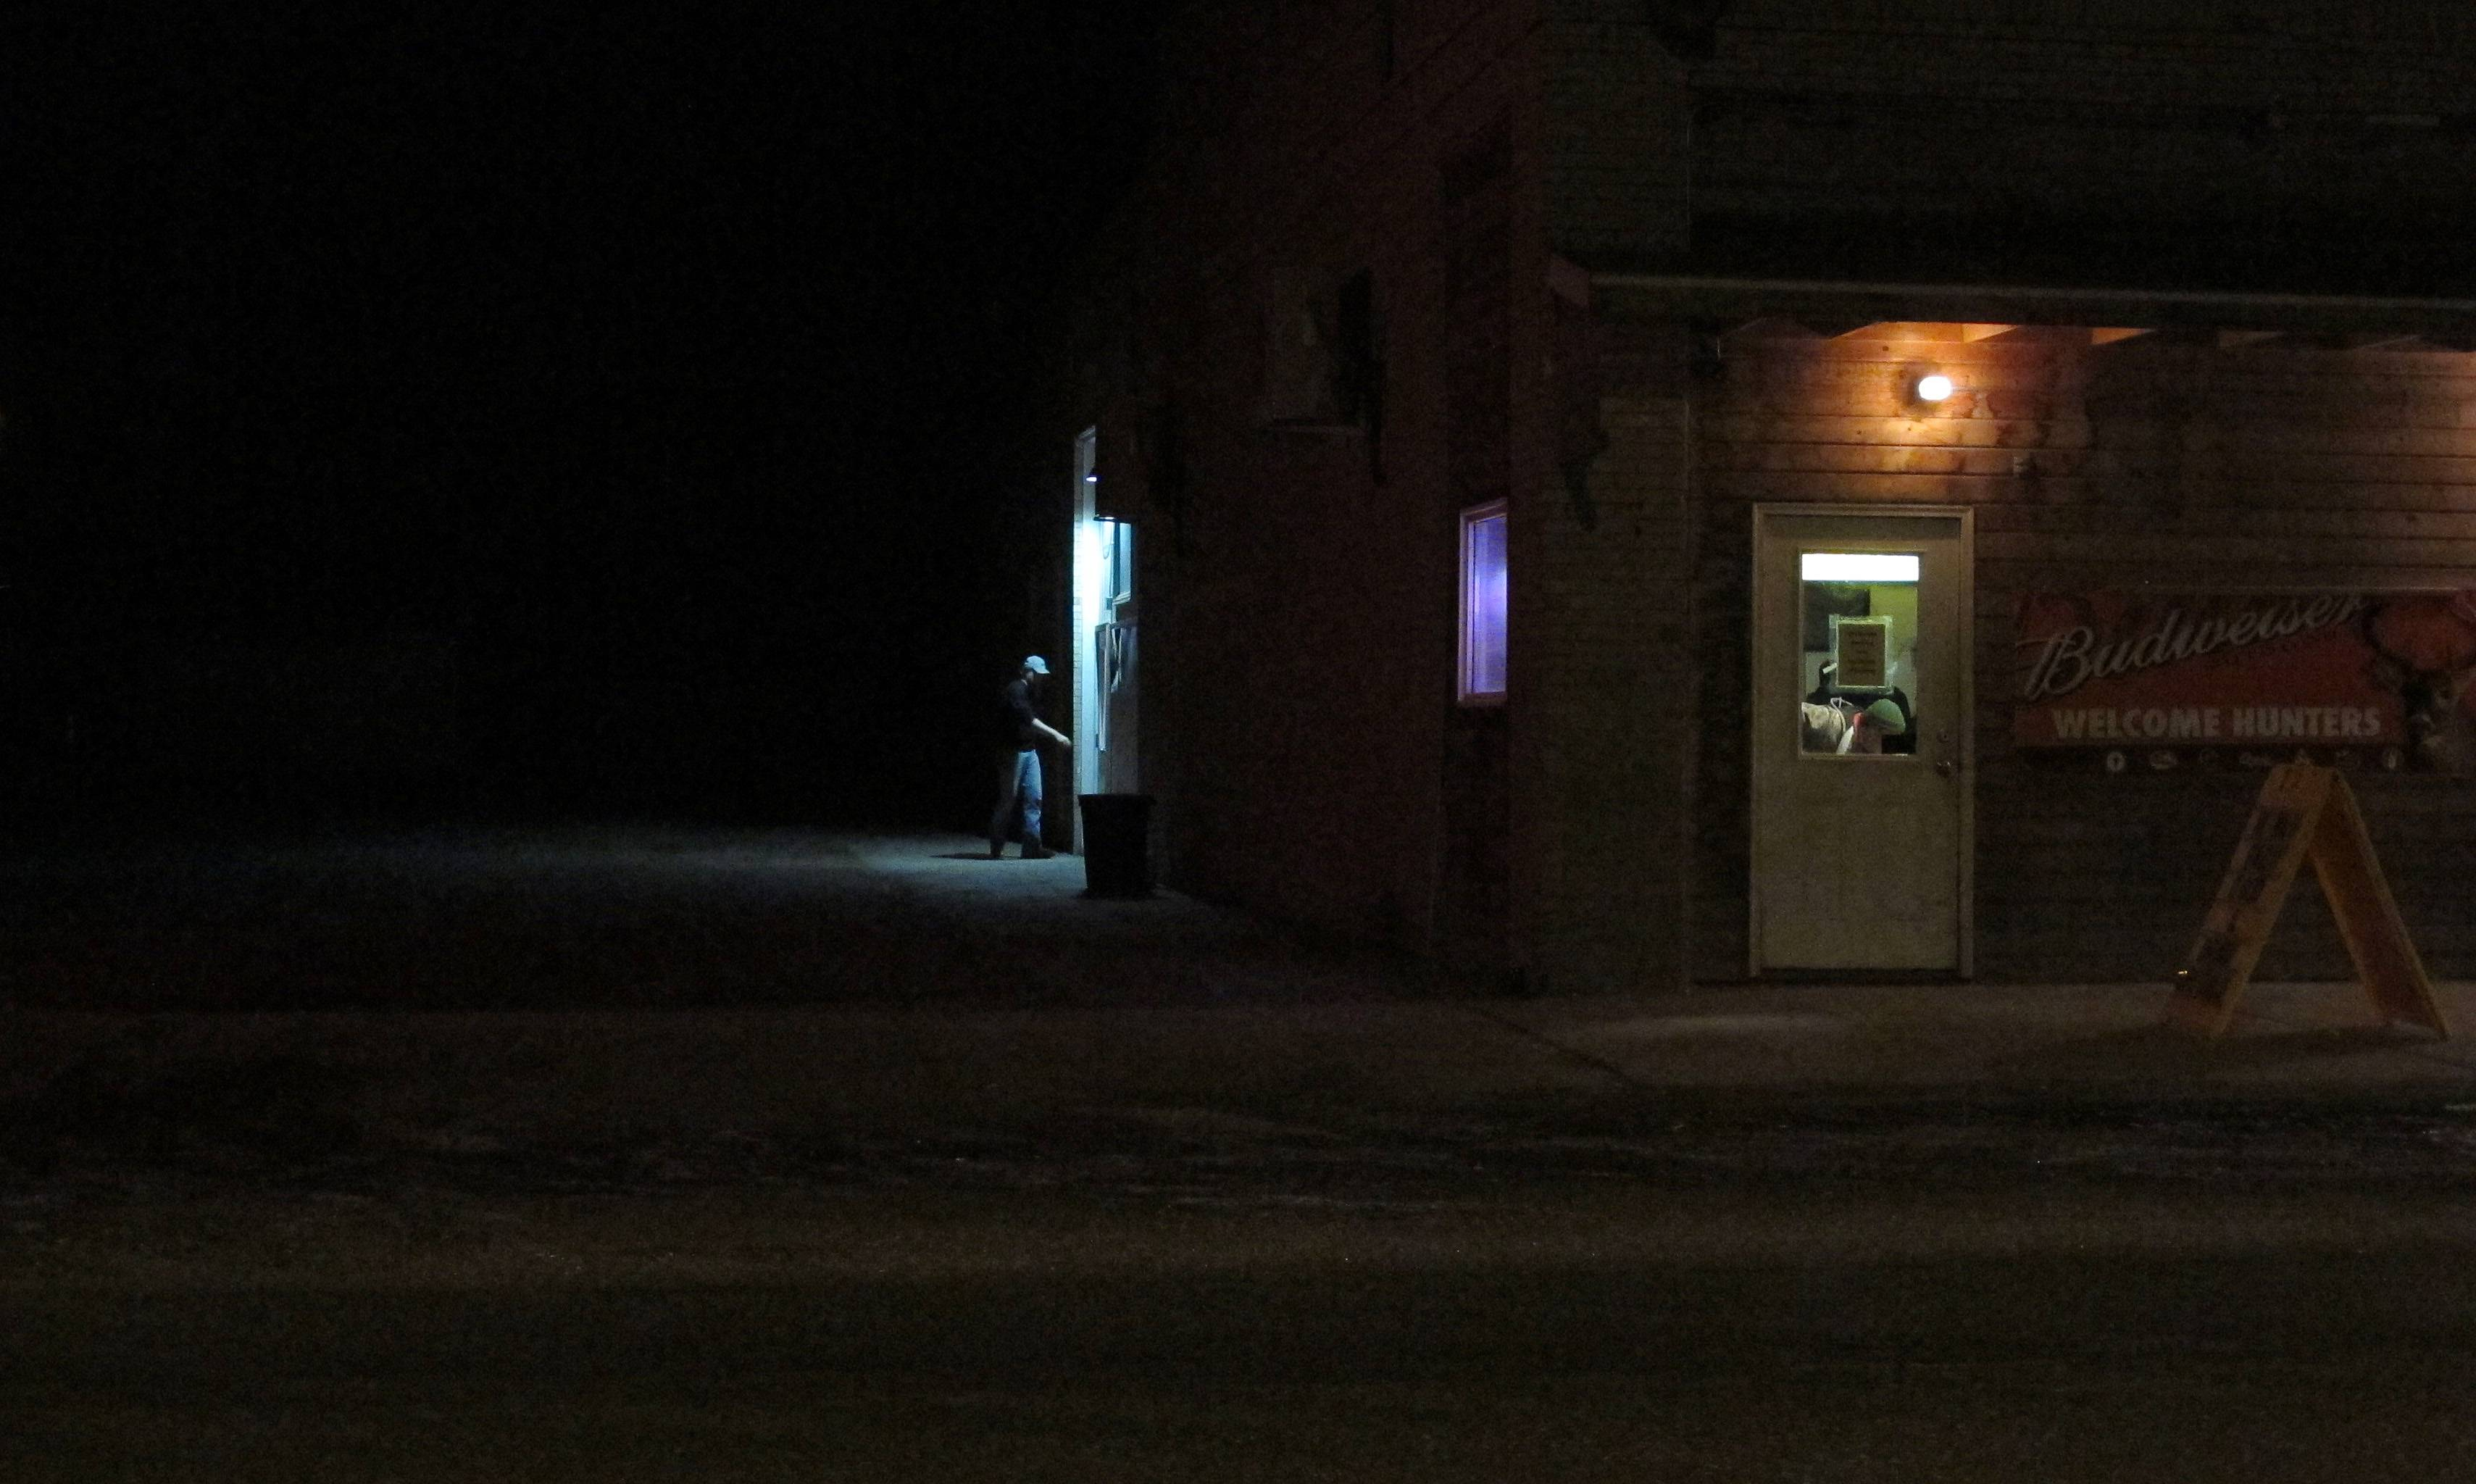 A patron walks into a bar in Alexander, N.D. The Baaken region, which includes northwest North Dakota, is known for its night life and drinking scene. Law enforcement officials say the region has had a growing crime problem, much of it related to drug and alcohol abuse.